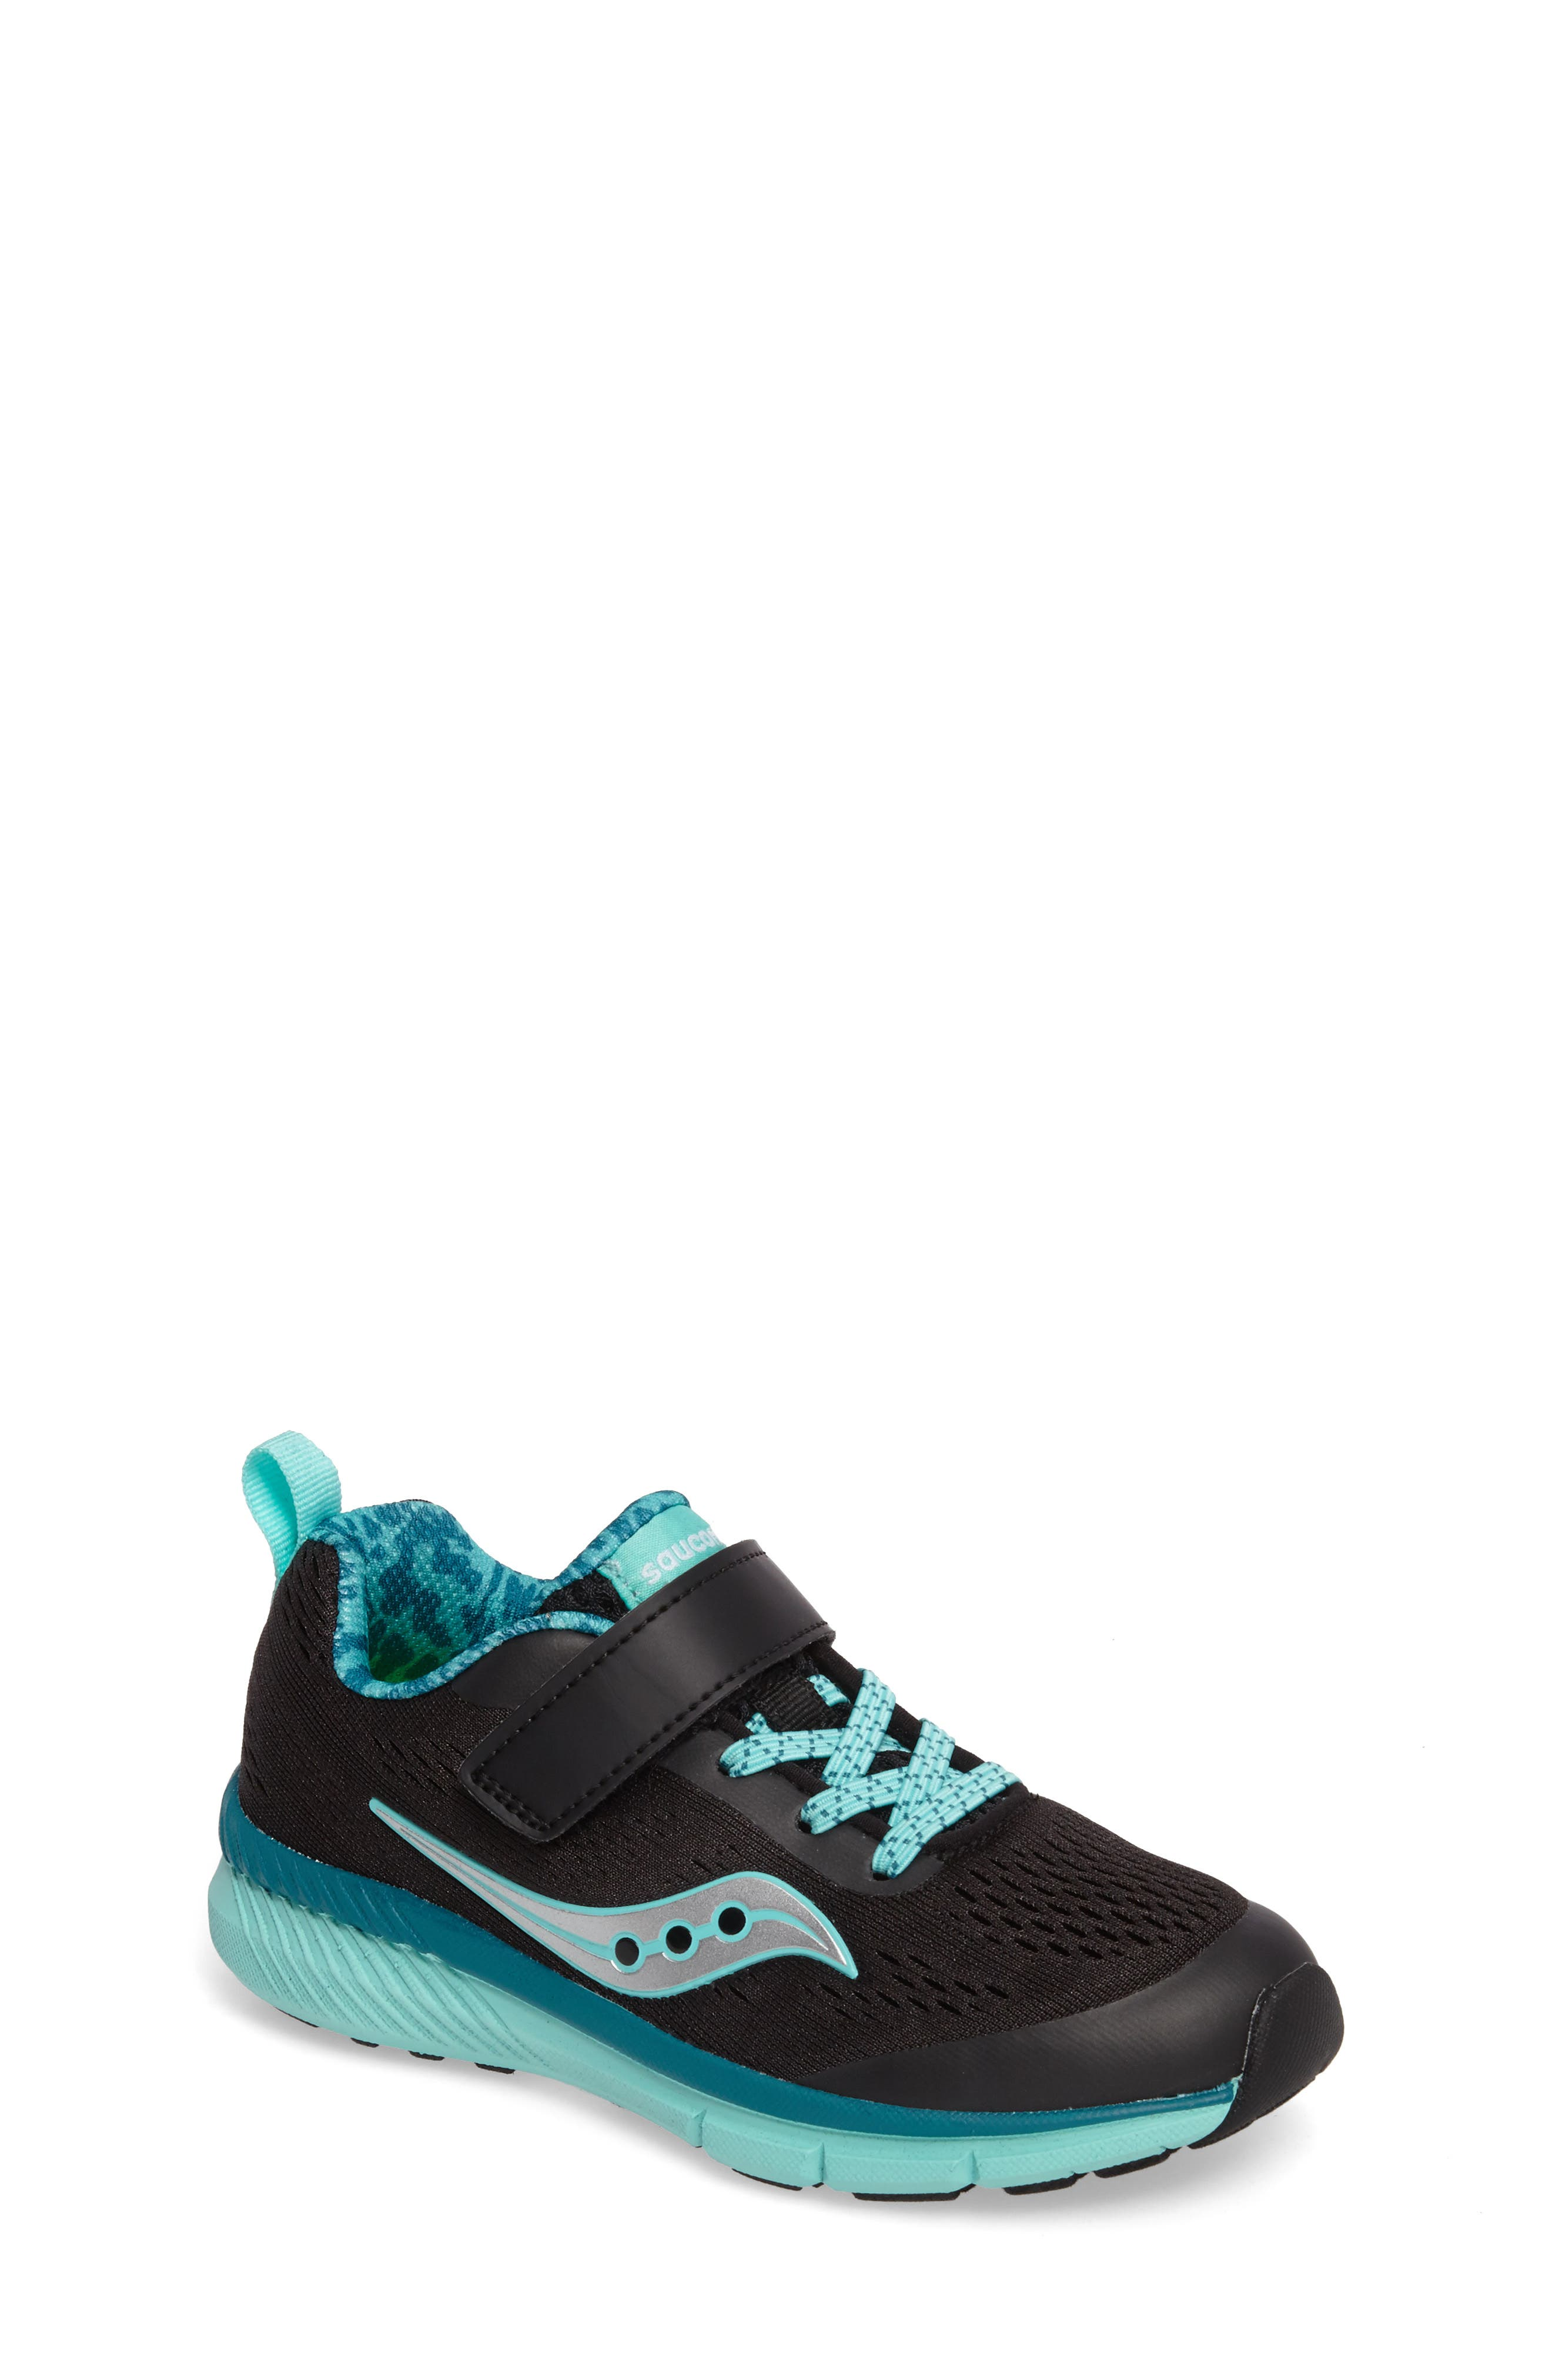 Alternate Image 1 Selected - Saucony Ideal Sneaker (Toddler & Little Kid)